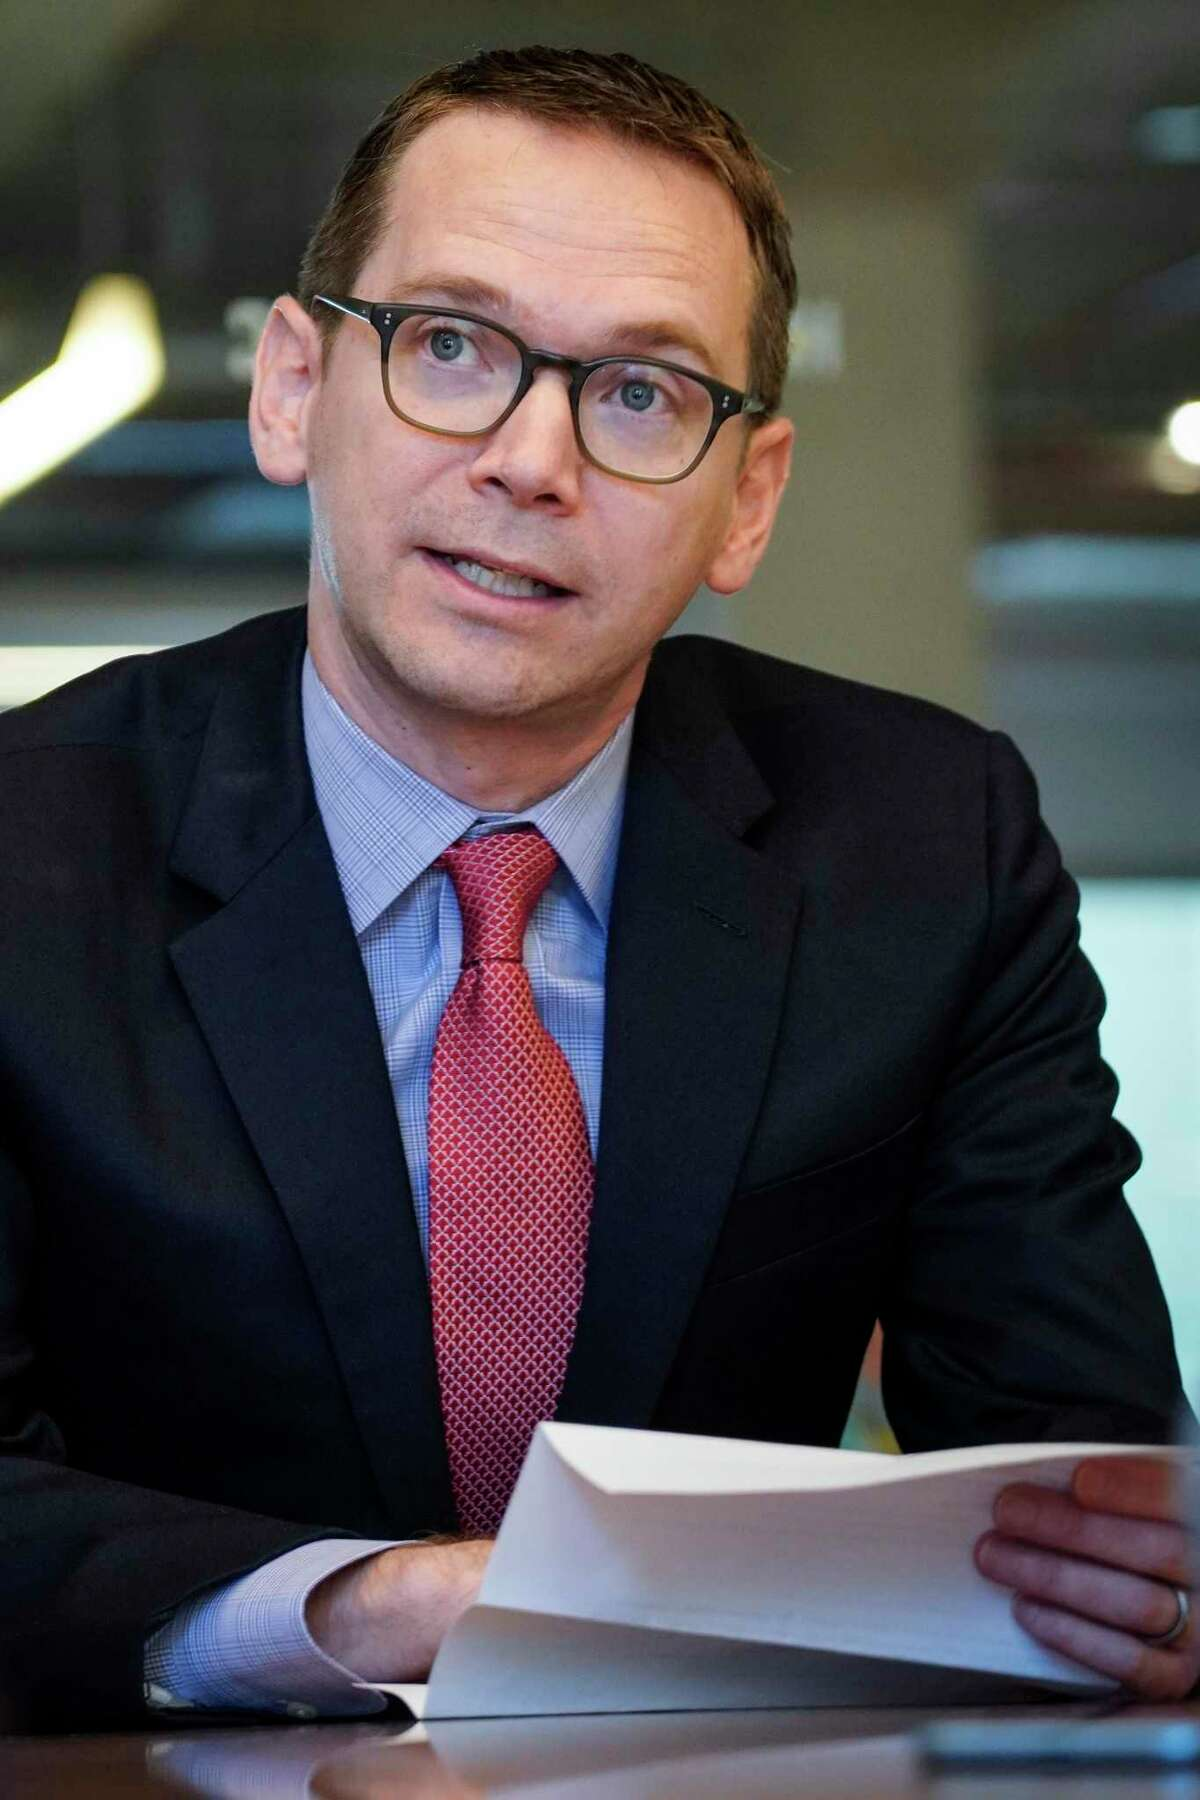 Texas Education Commissioner Mike Morath, pictured in a 2019 file photo, said Sunday in a conference call with education and political leaders that schools in areas with outbreaks of the novel coronavirus could stay closed for the remainder of the academic year.